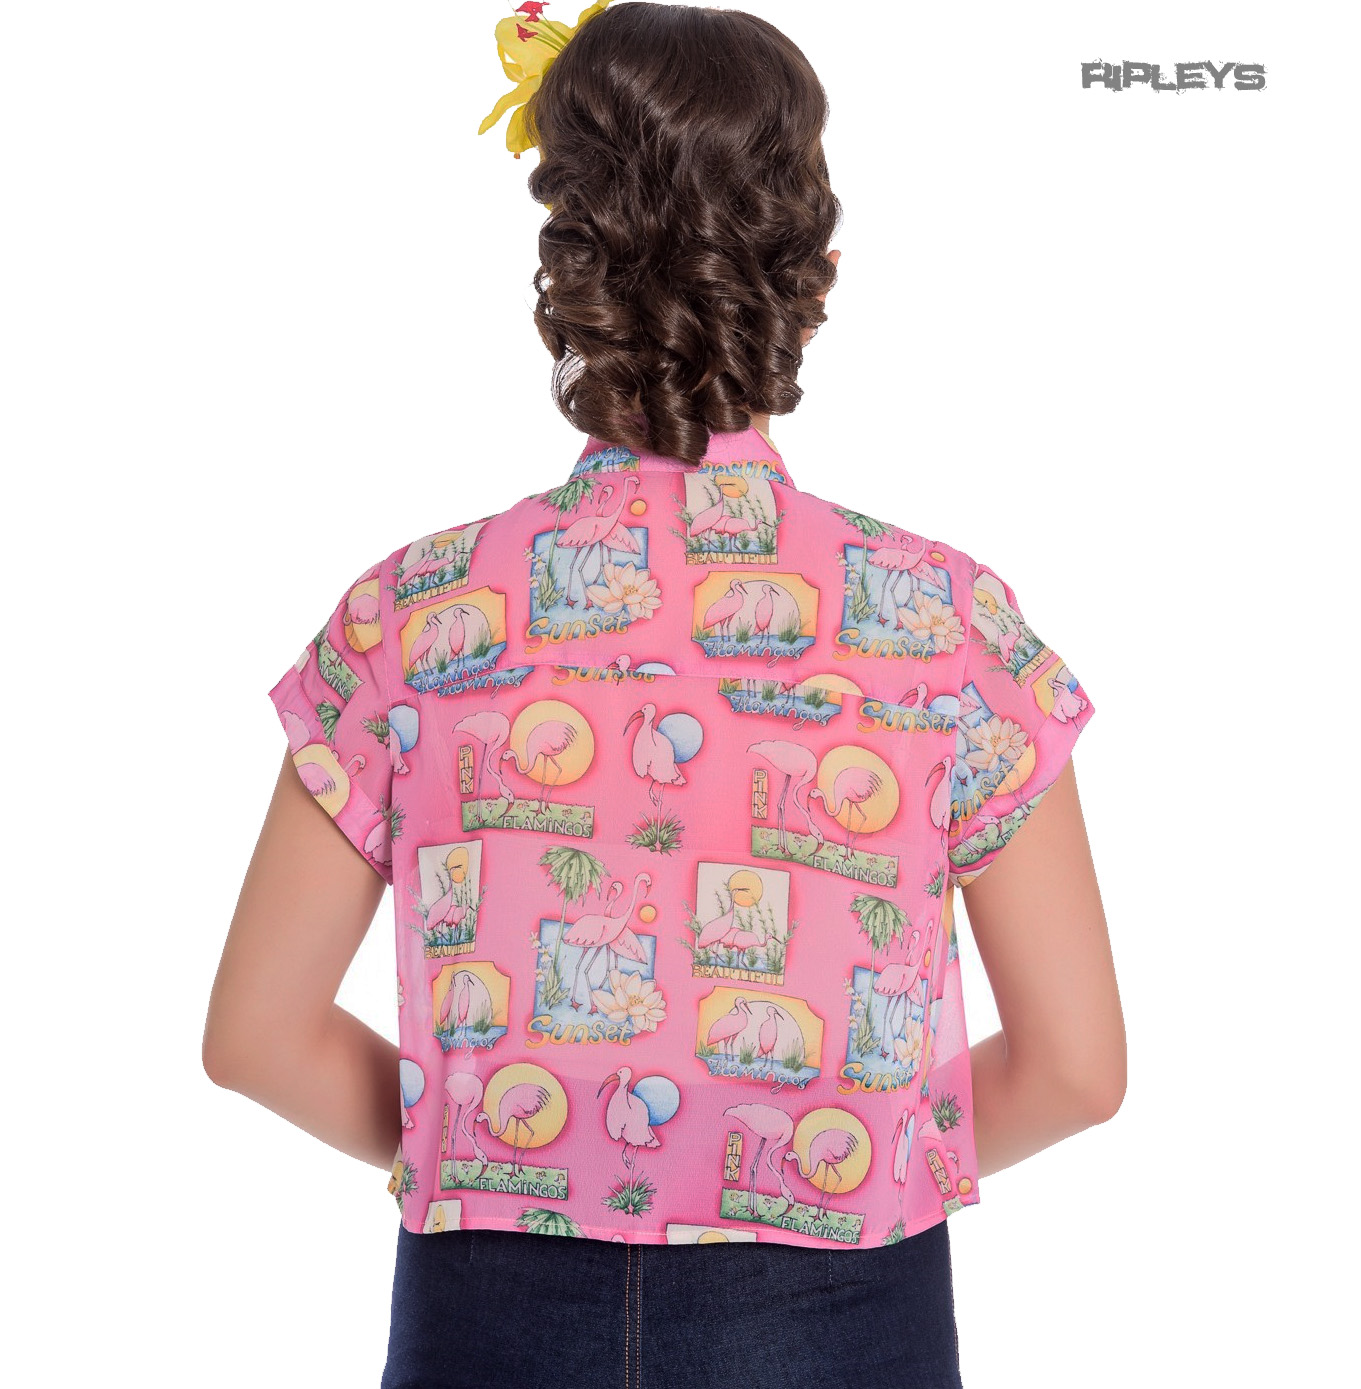 thumbnail 23 - Hell Bunny 50s Retro Top Pink Flamingo MAXINE Cropped Blouse Shirt All Sizes